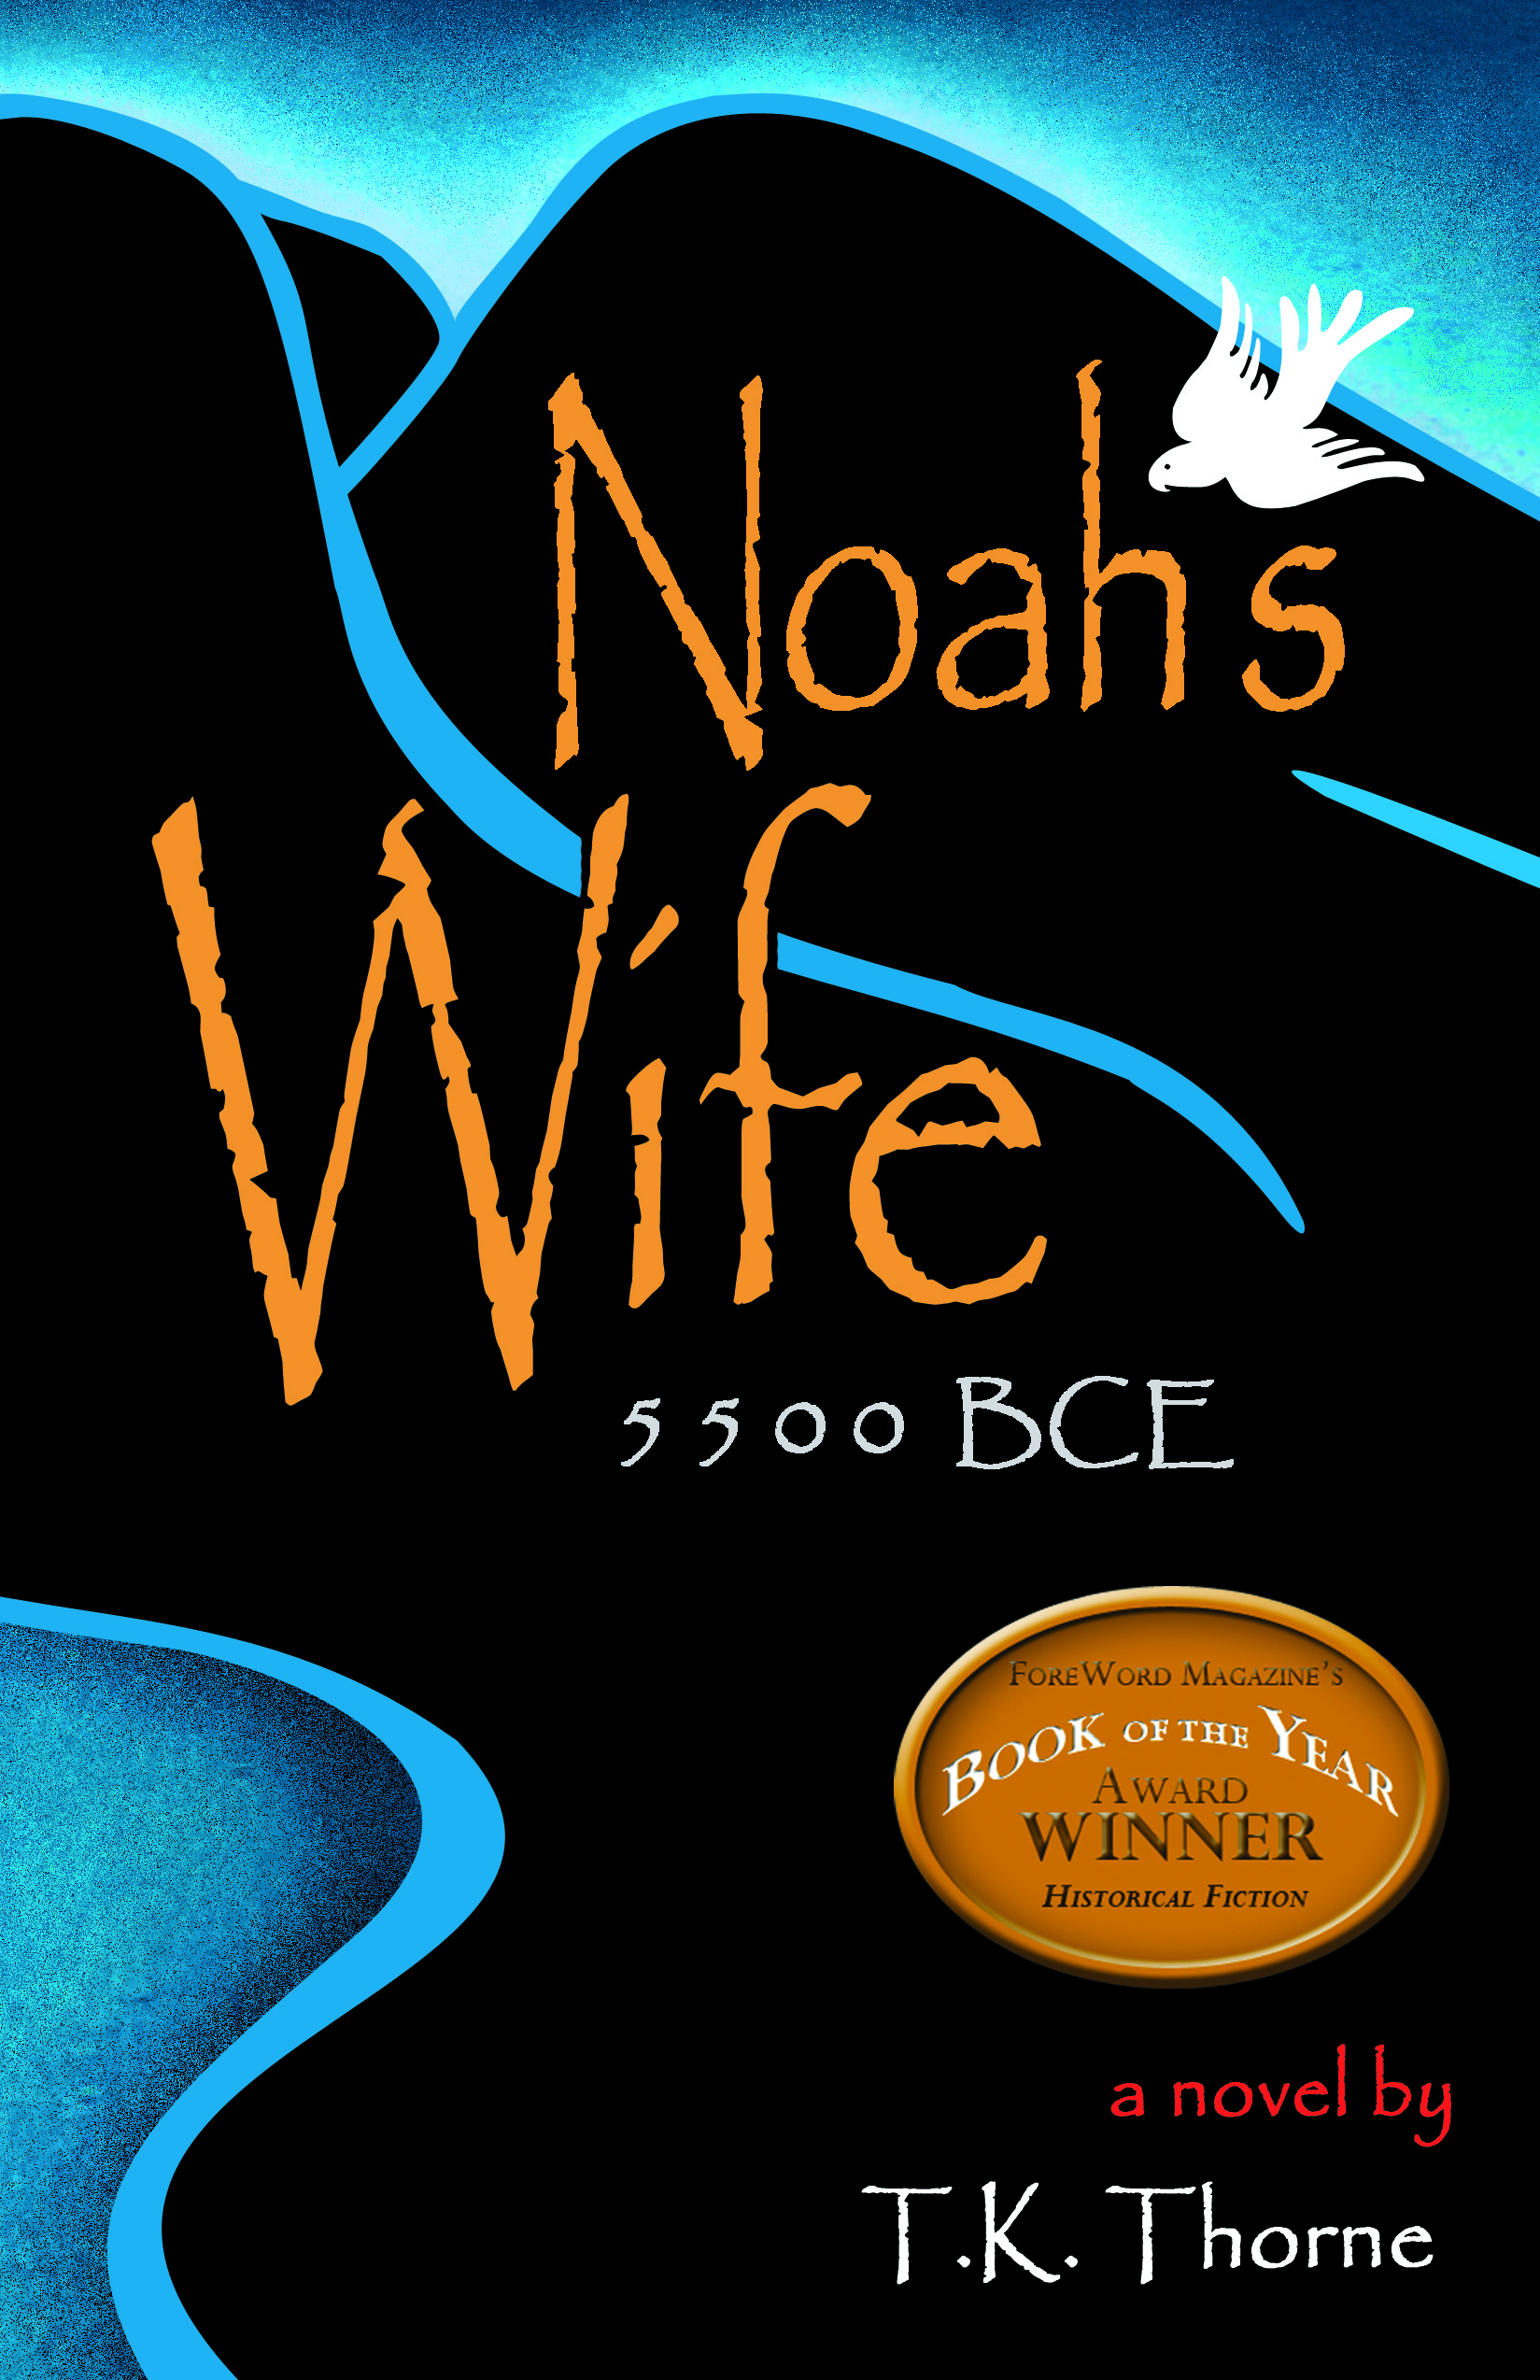 02_NOAH'S WIFE FRONT COVER Final with sticker